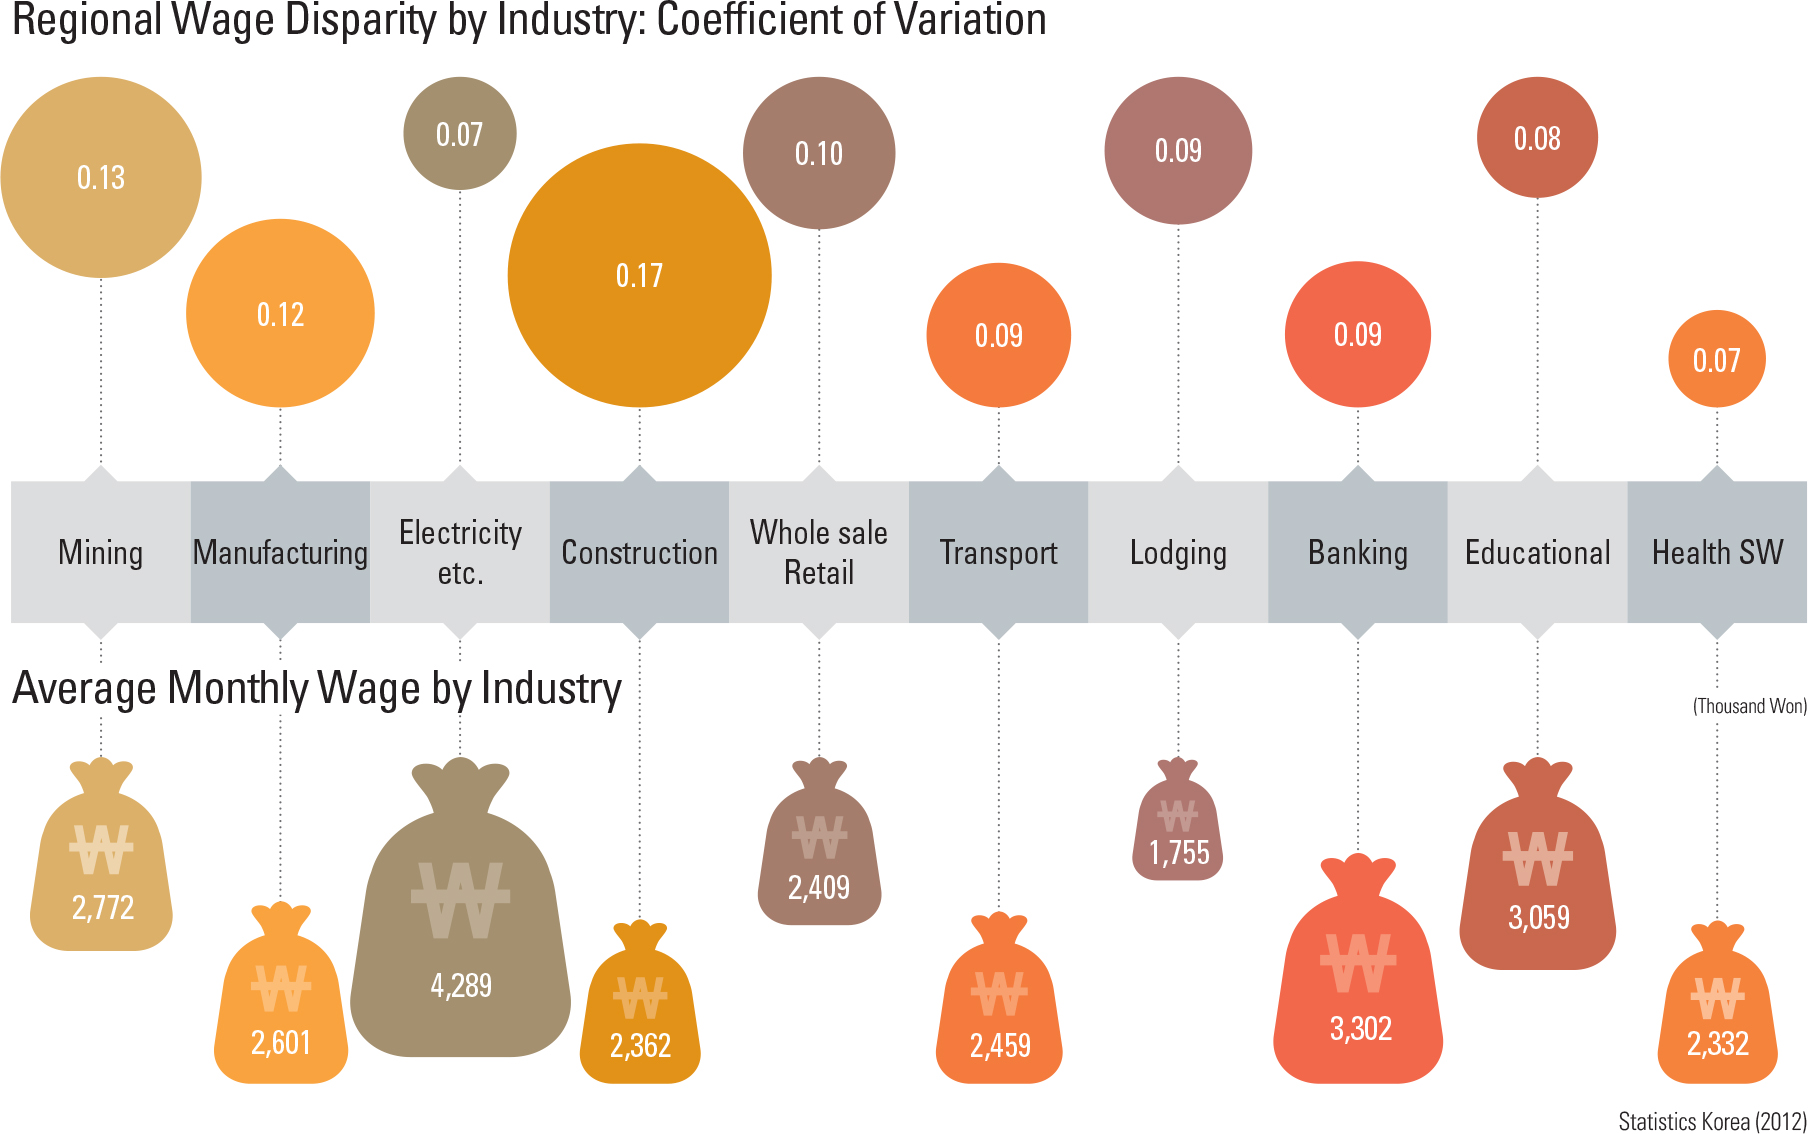 Regional Wage Disparity by Industry: Coefficient of Variation